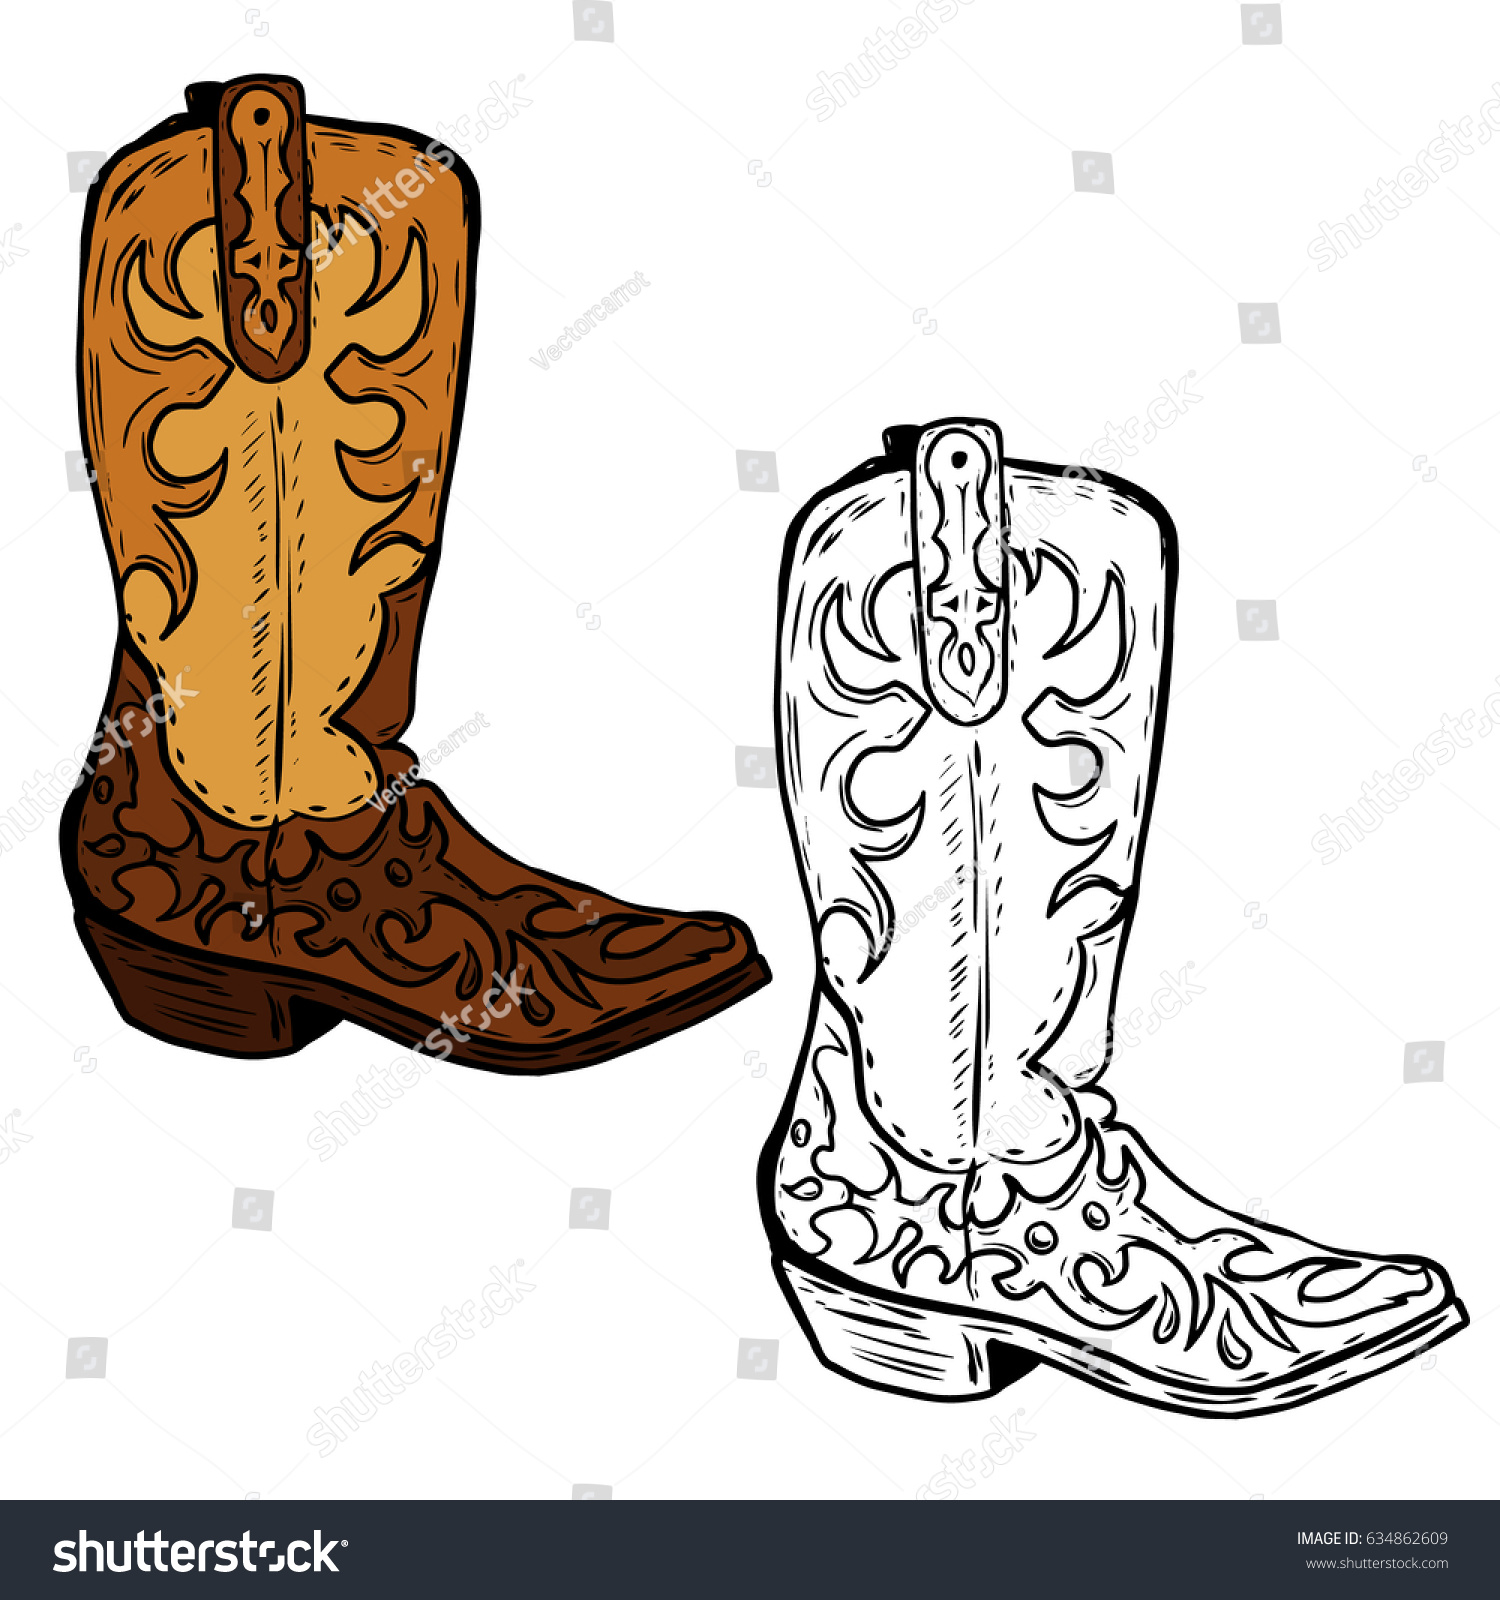 Hand Drawn Cowboy Boots Illustration Design Stock Photo (Photo ...